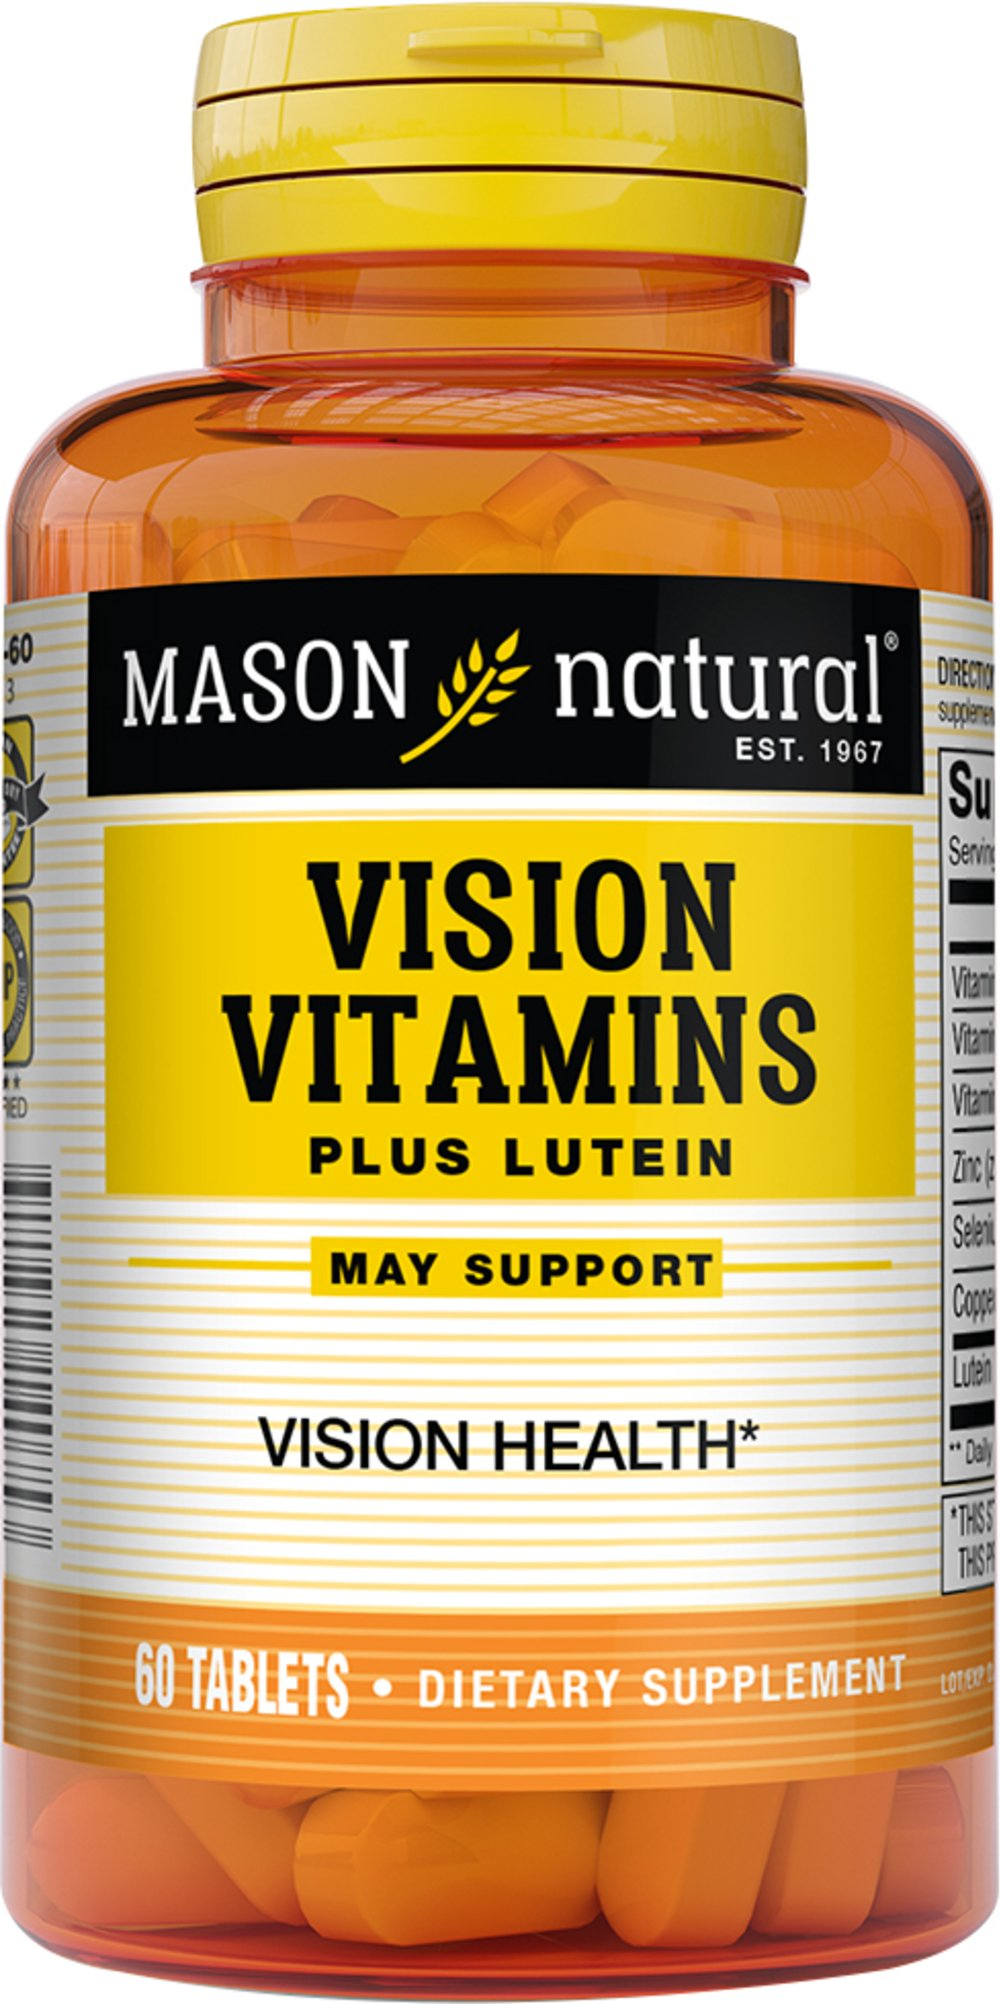 Vision Vitamins Plus Lutein  60 Tablets  $6.99